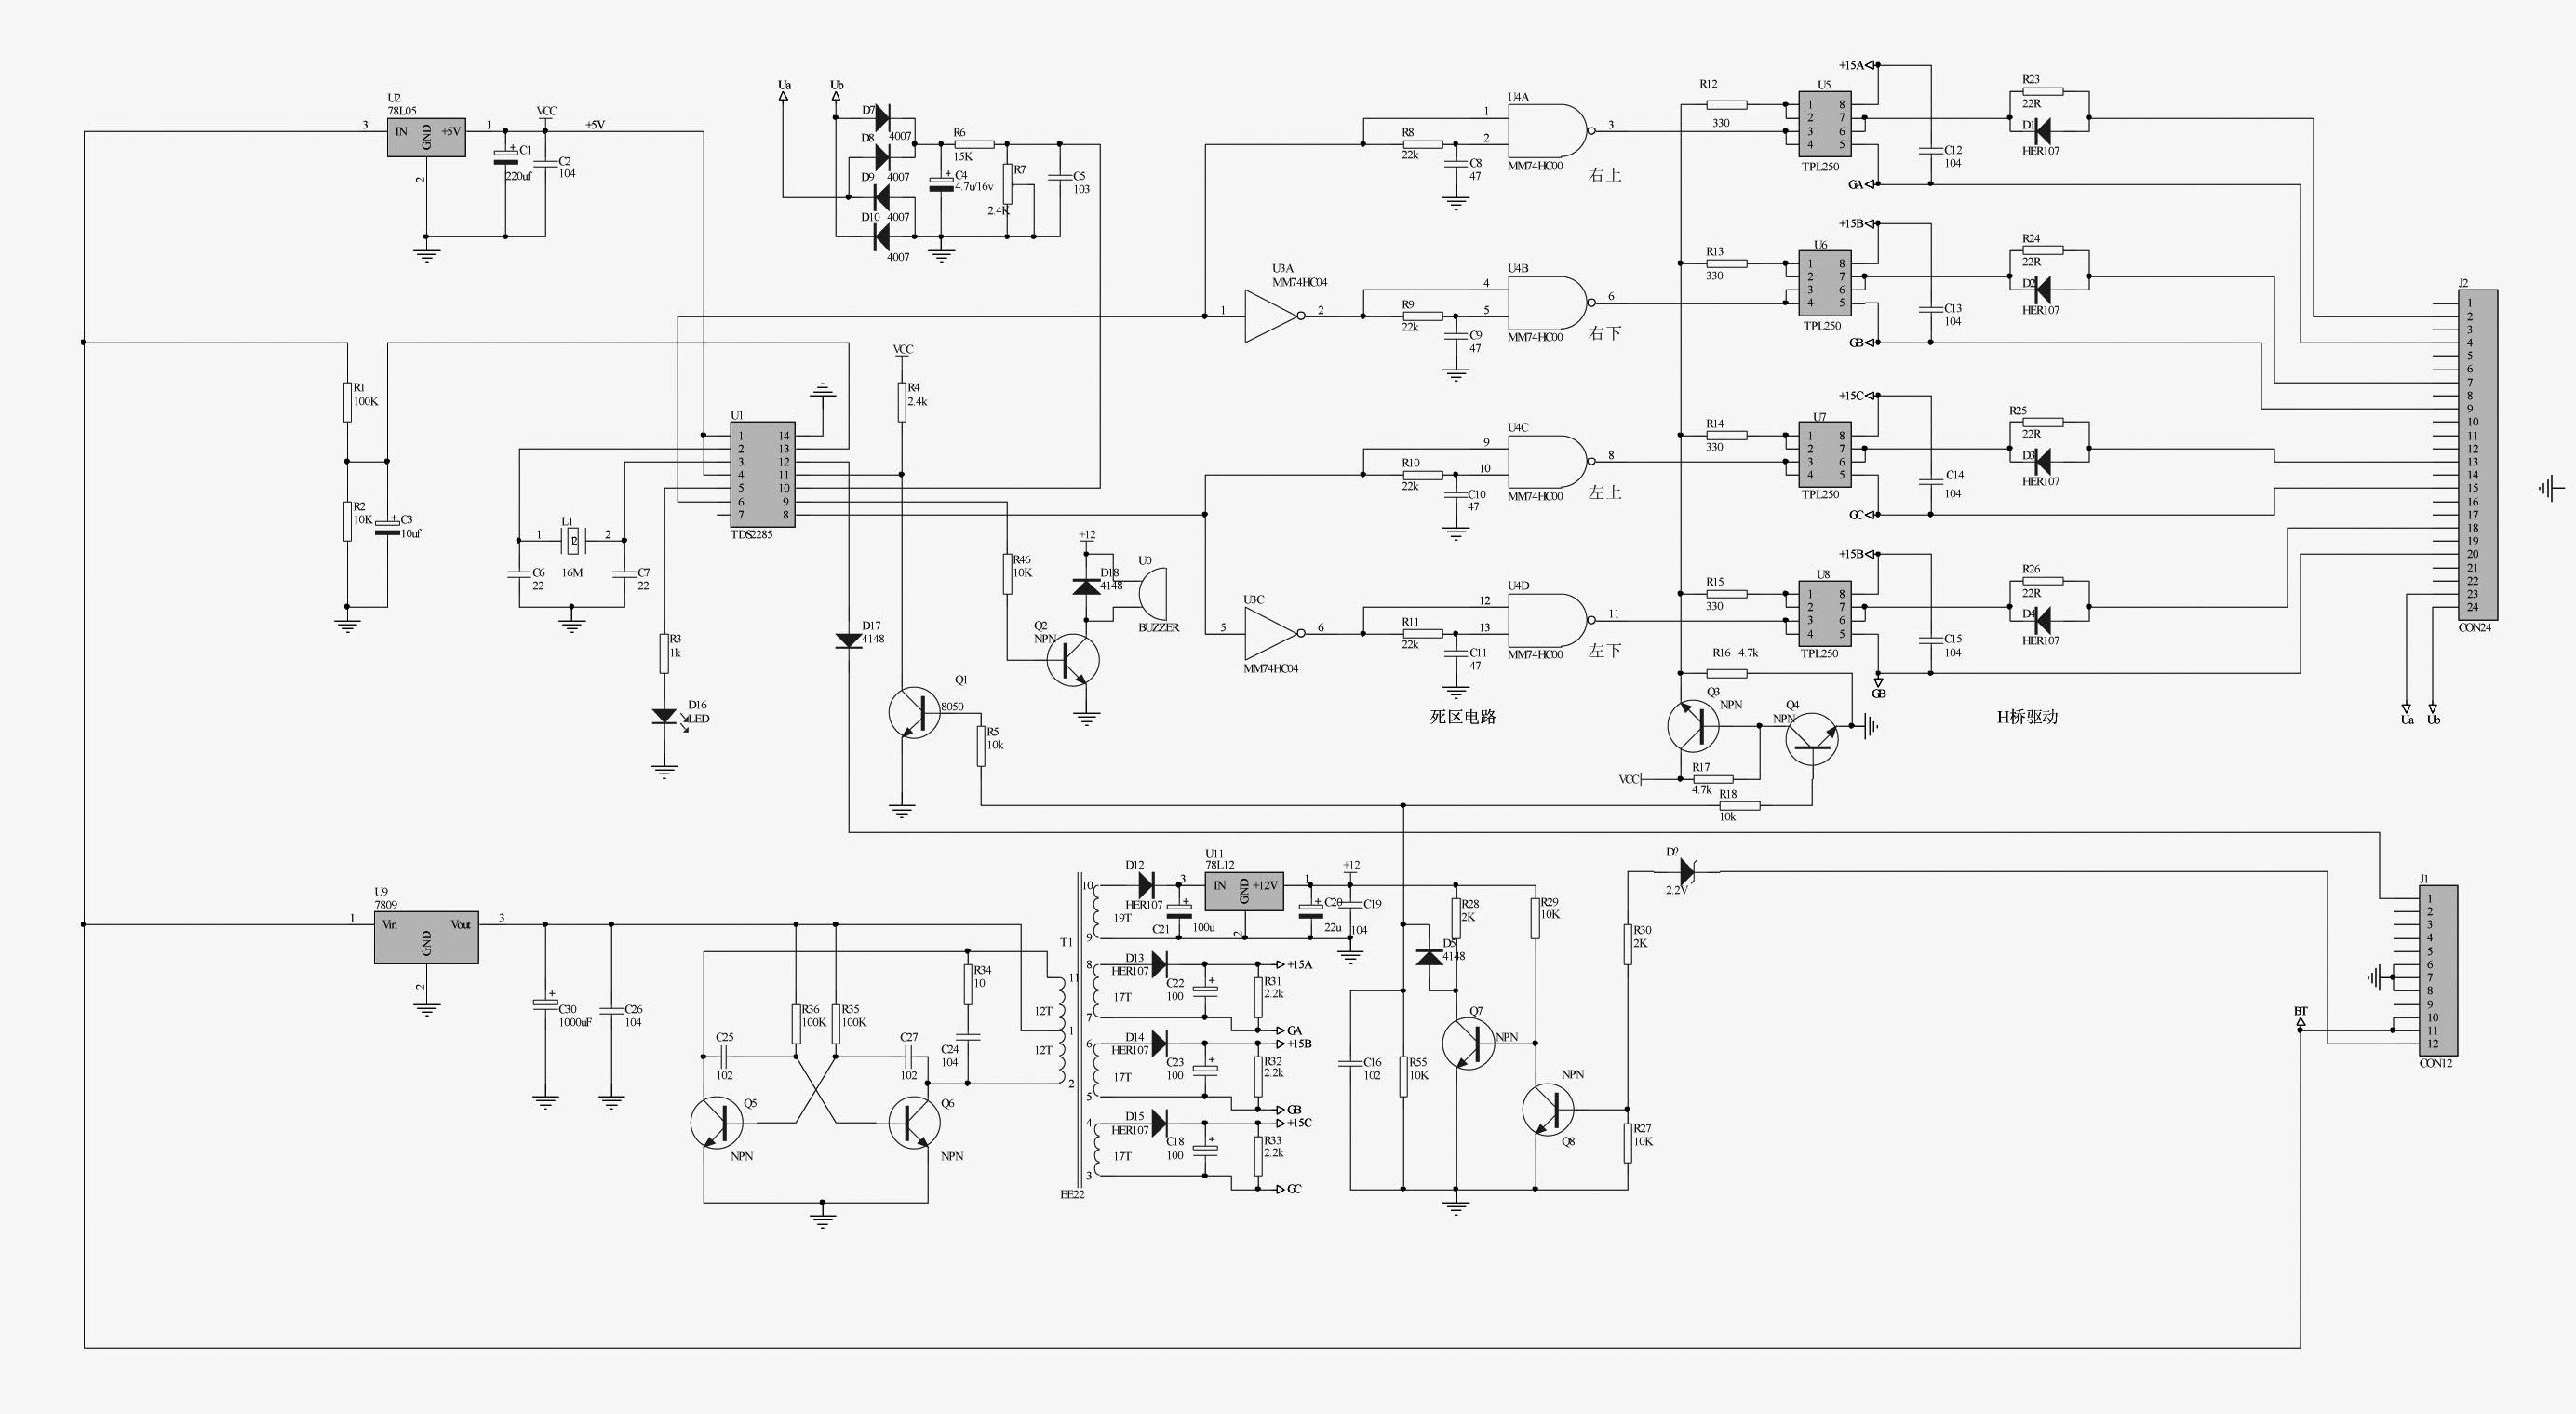 Ts Big Idea Schematic Symbols Where To Find Diyaudio 1000w Power Inverter Spwm Driven Circuit Diagram